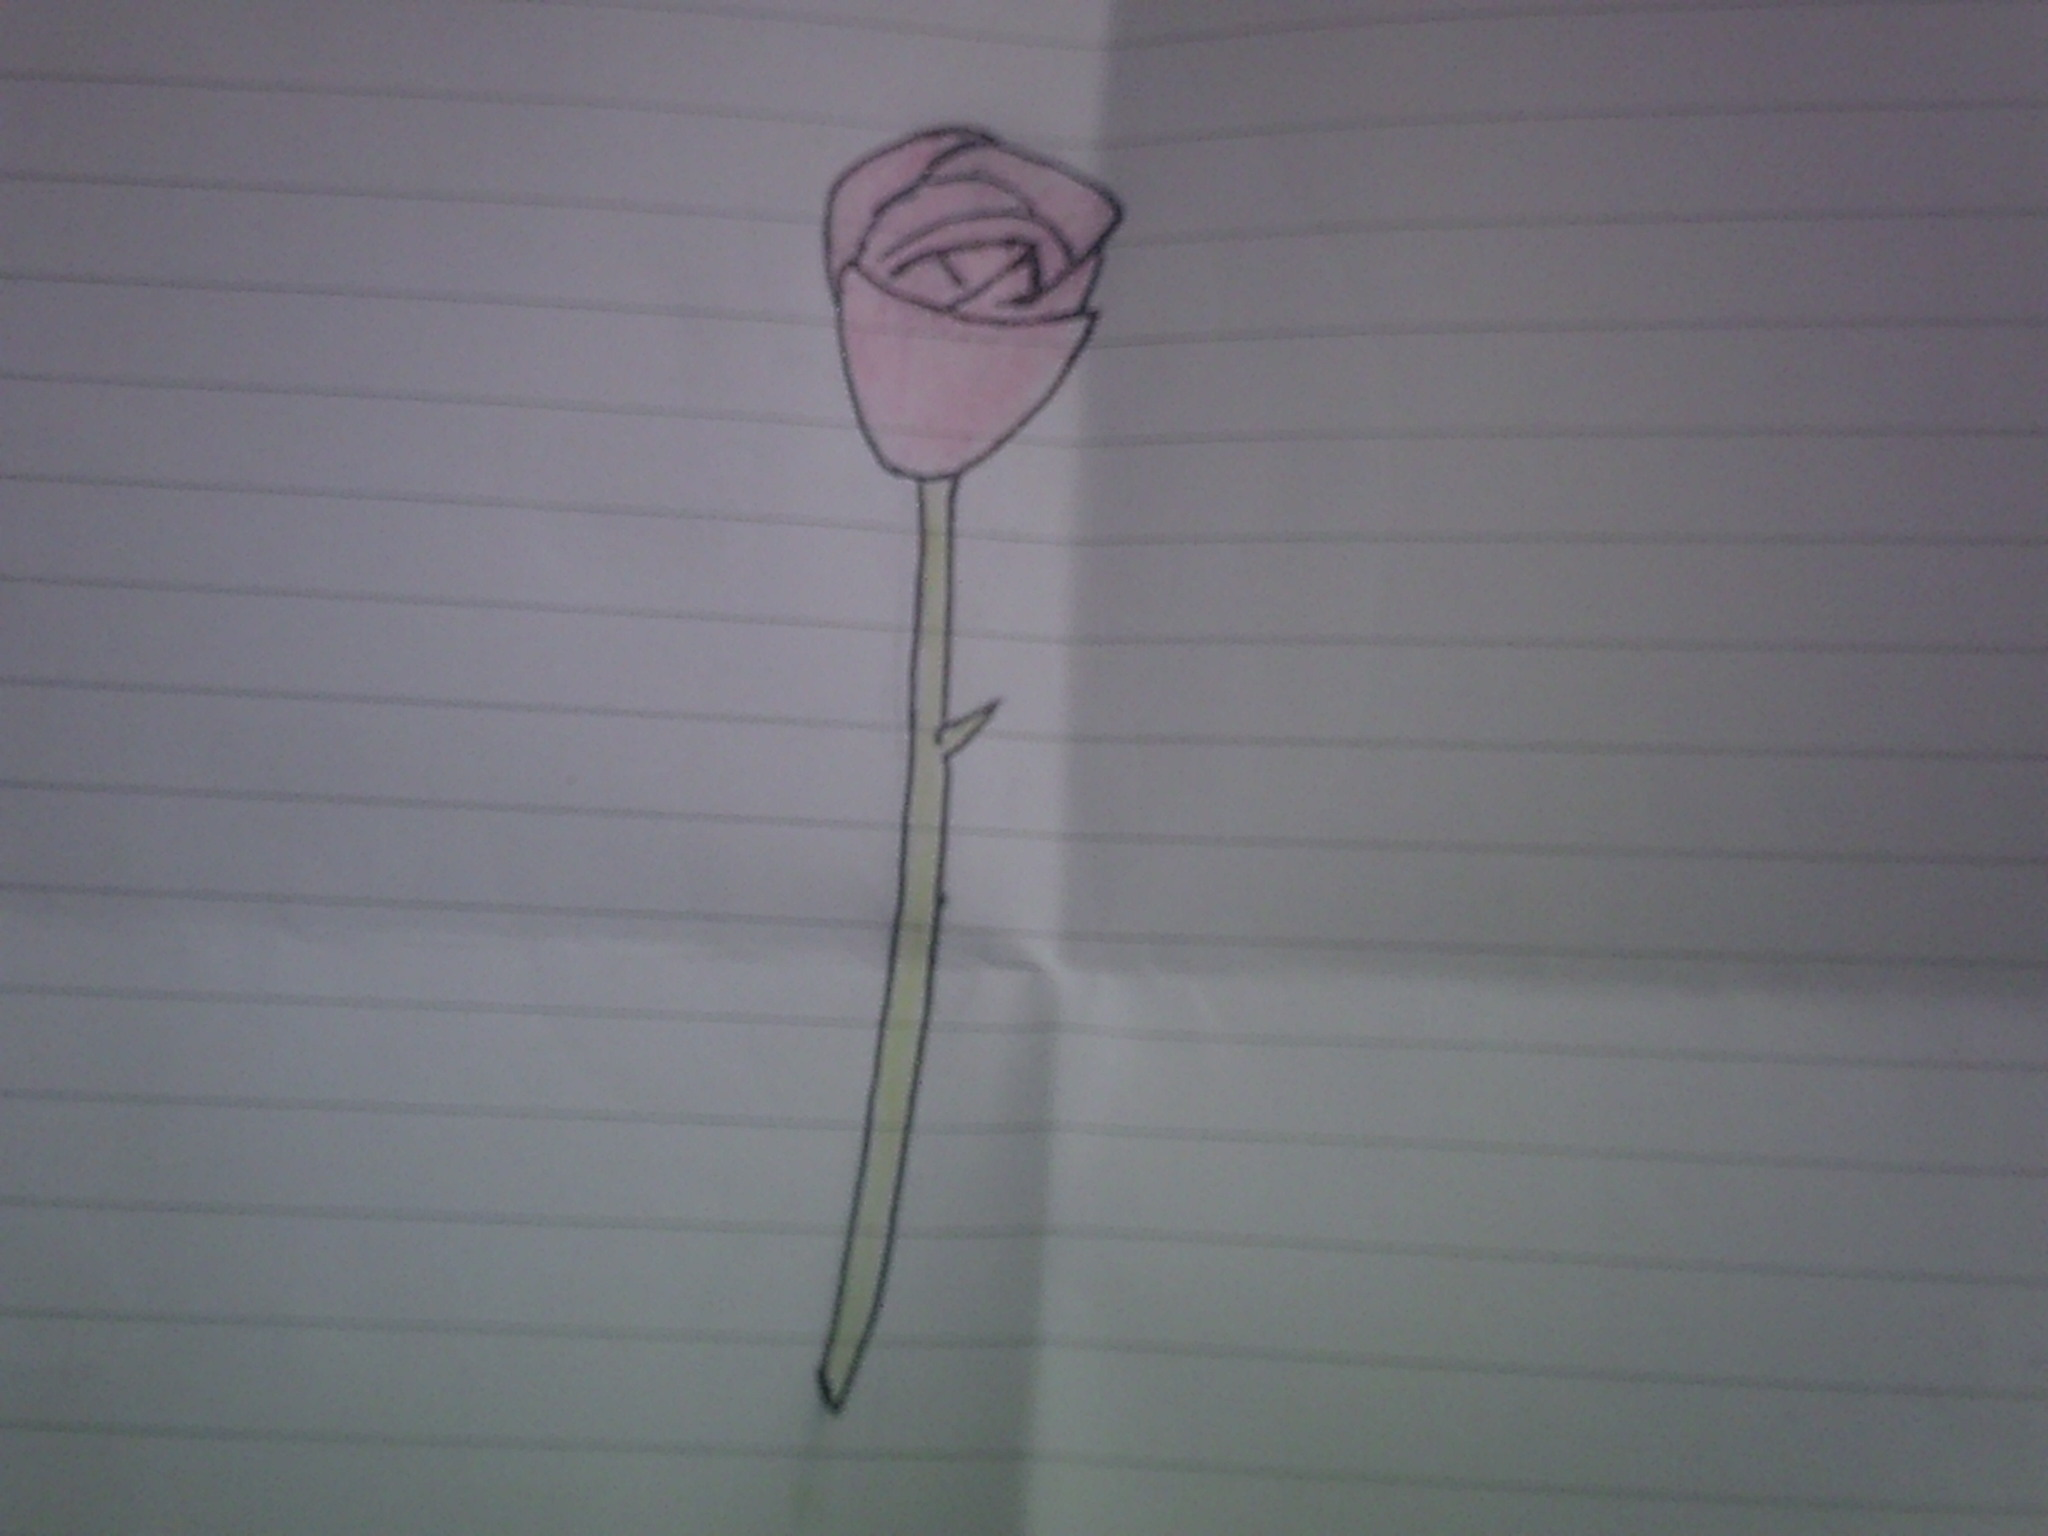 A red rose that i drew